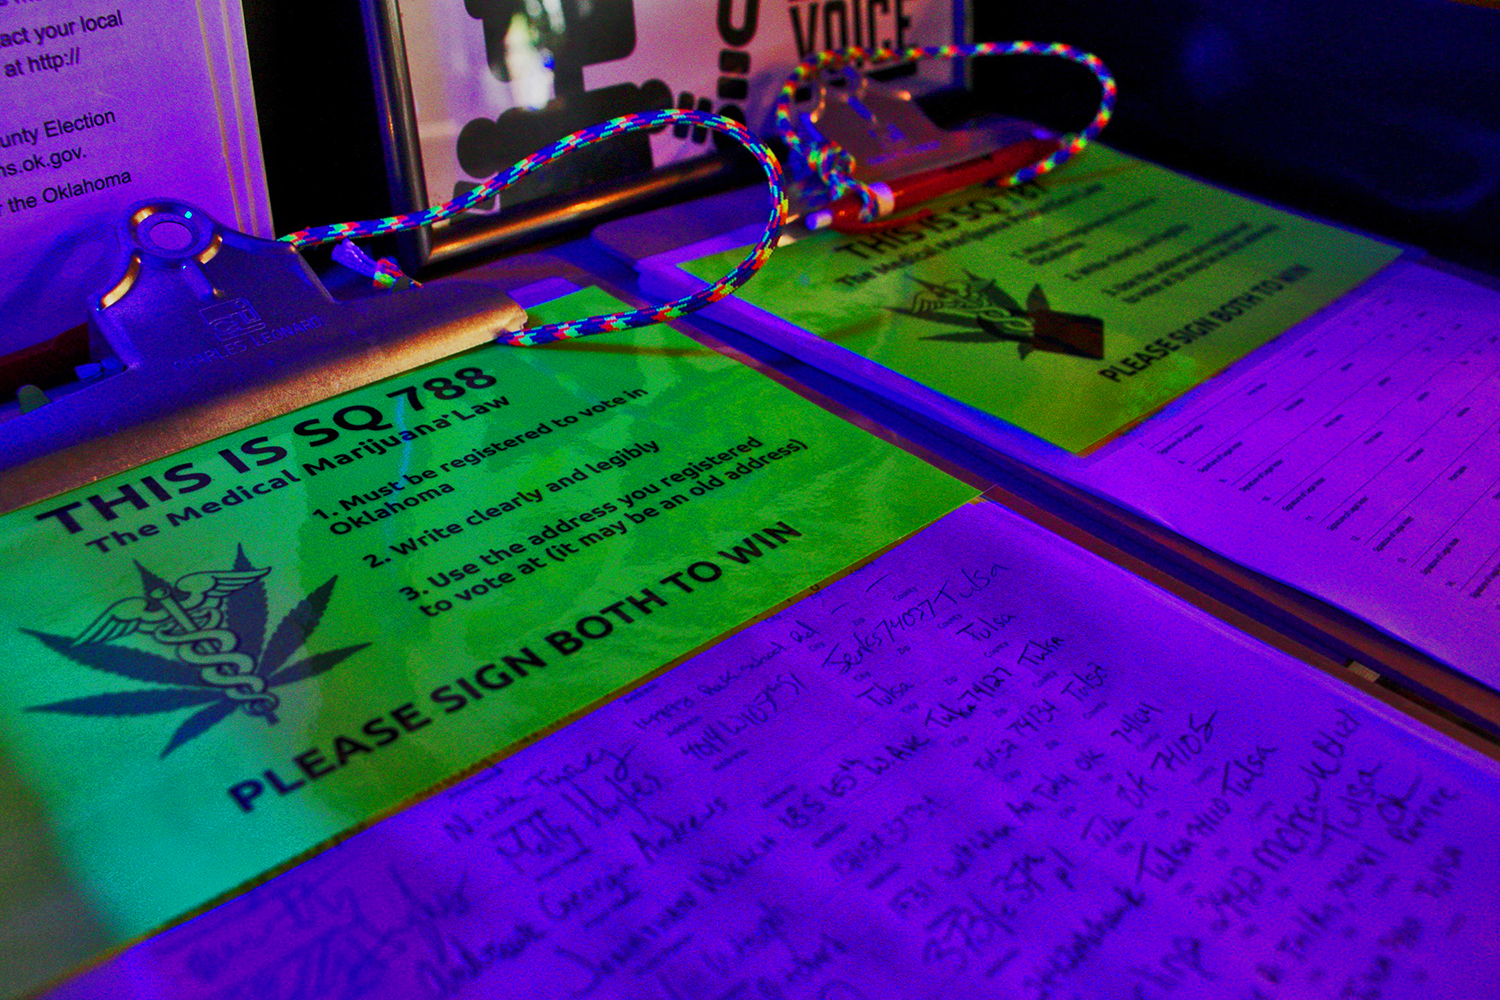 A petition to legalize medical marijuana sits under black lights at The Gypsy Coffee House in Tulsa's Brady District. DYLAN GOFORTH / The Frontier